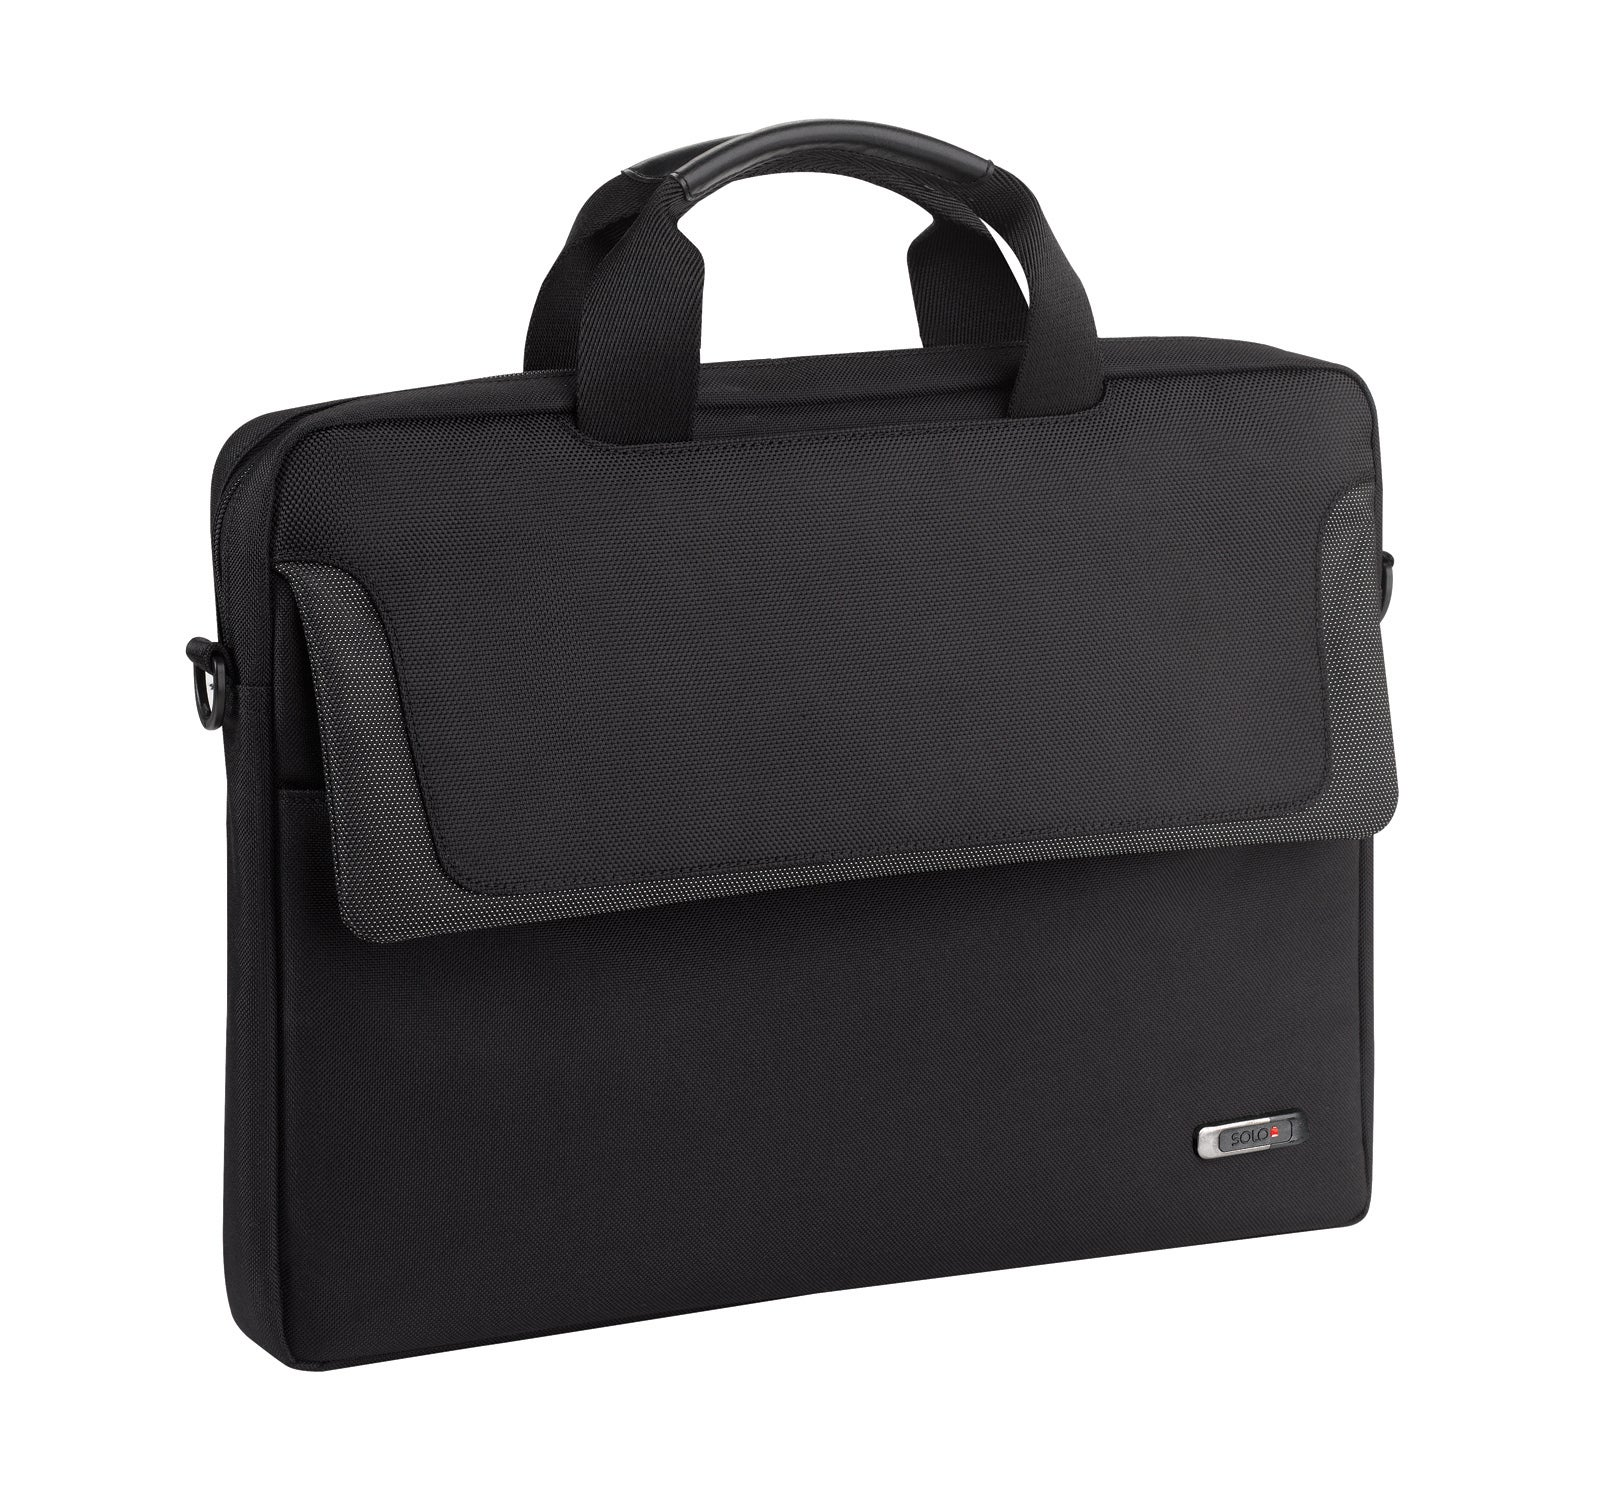 SOLO Sterling Black 16-inch Laptop Slim Briefcase